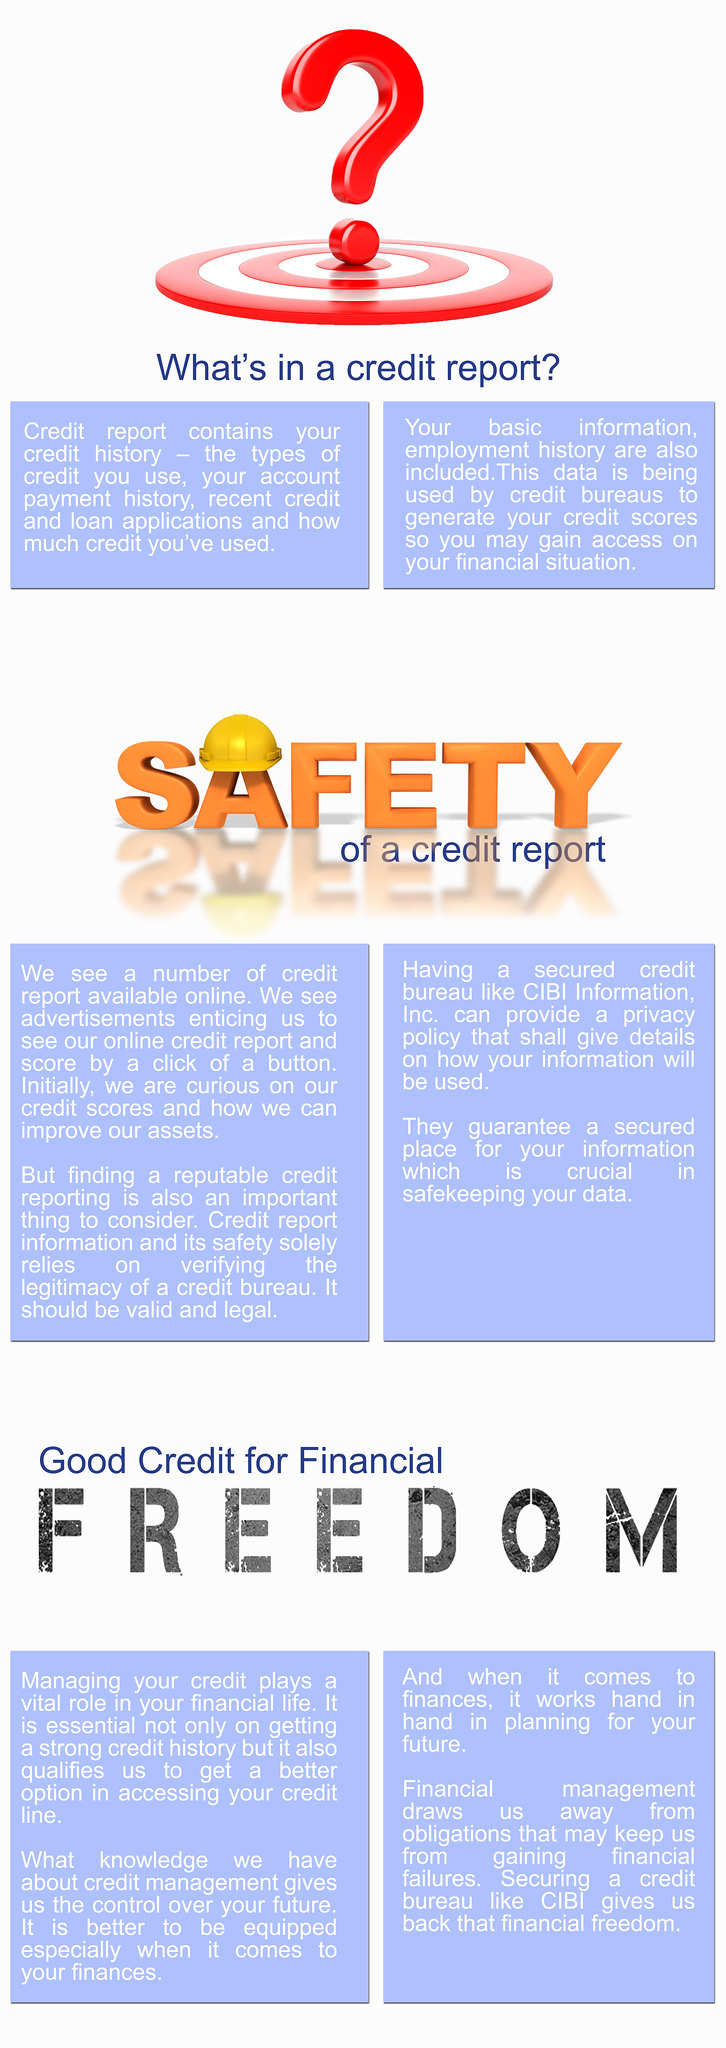 CREDIT REPORT INFORMATION AND ITS SAFETY copy